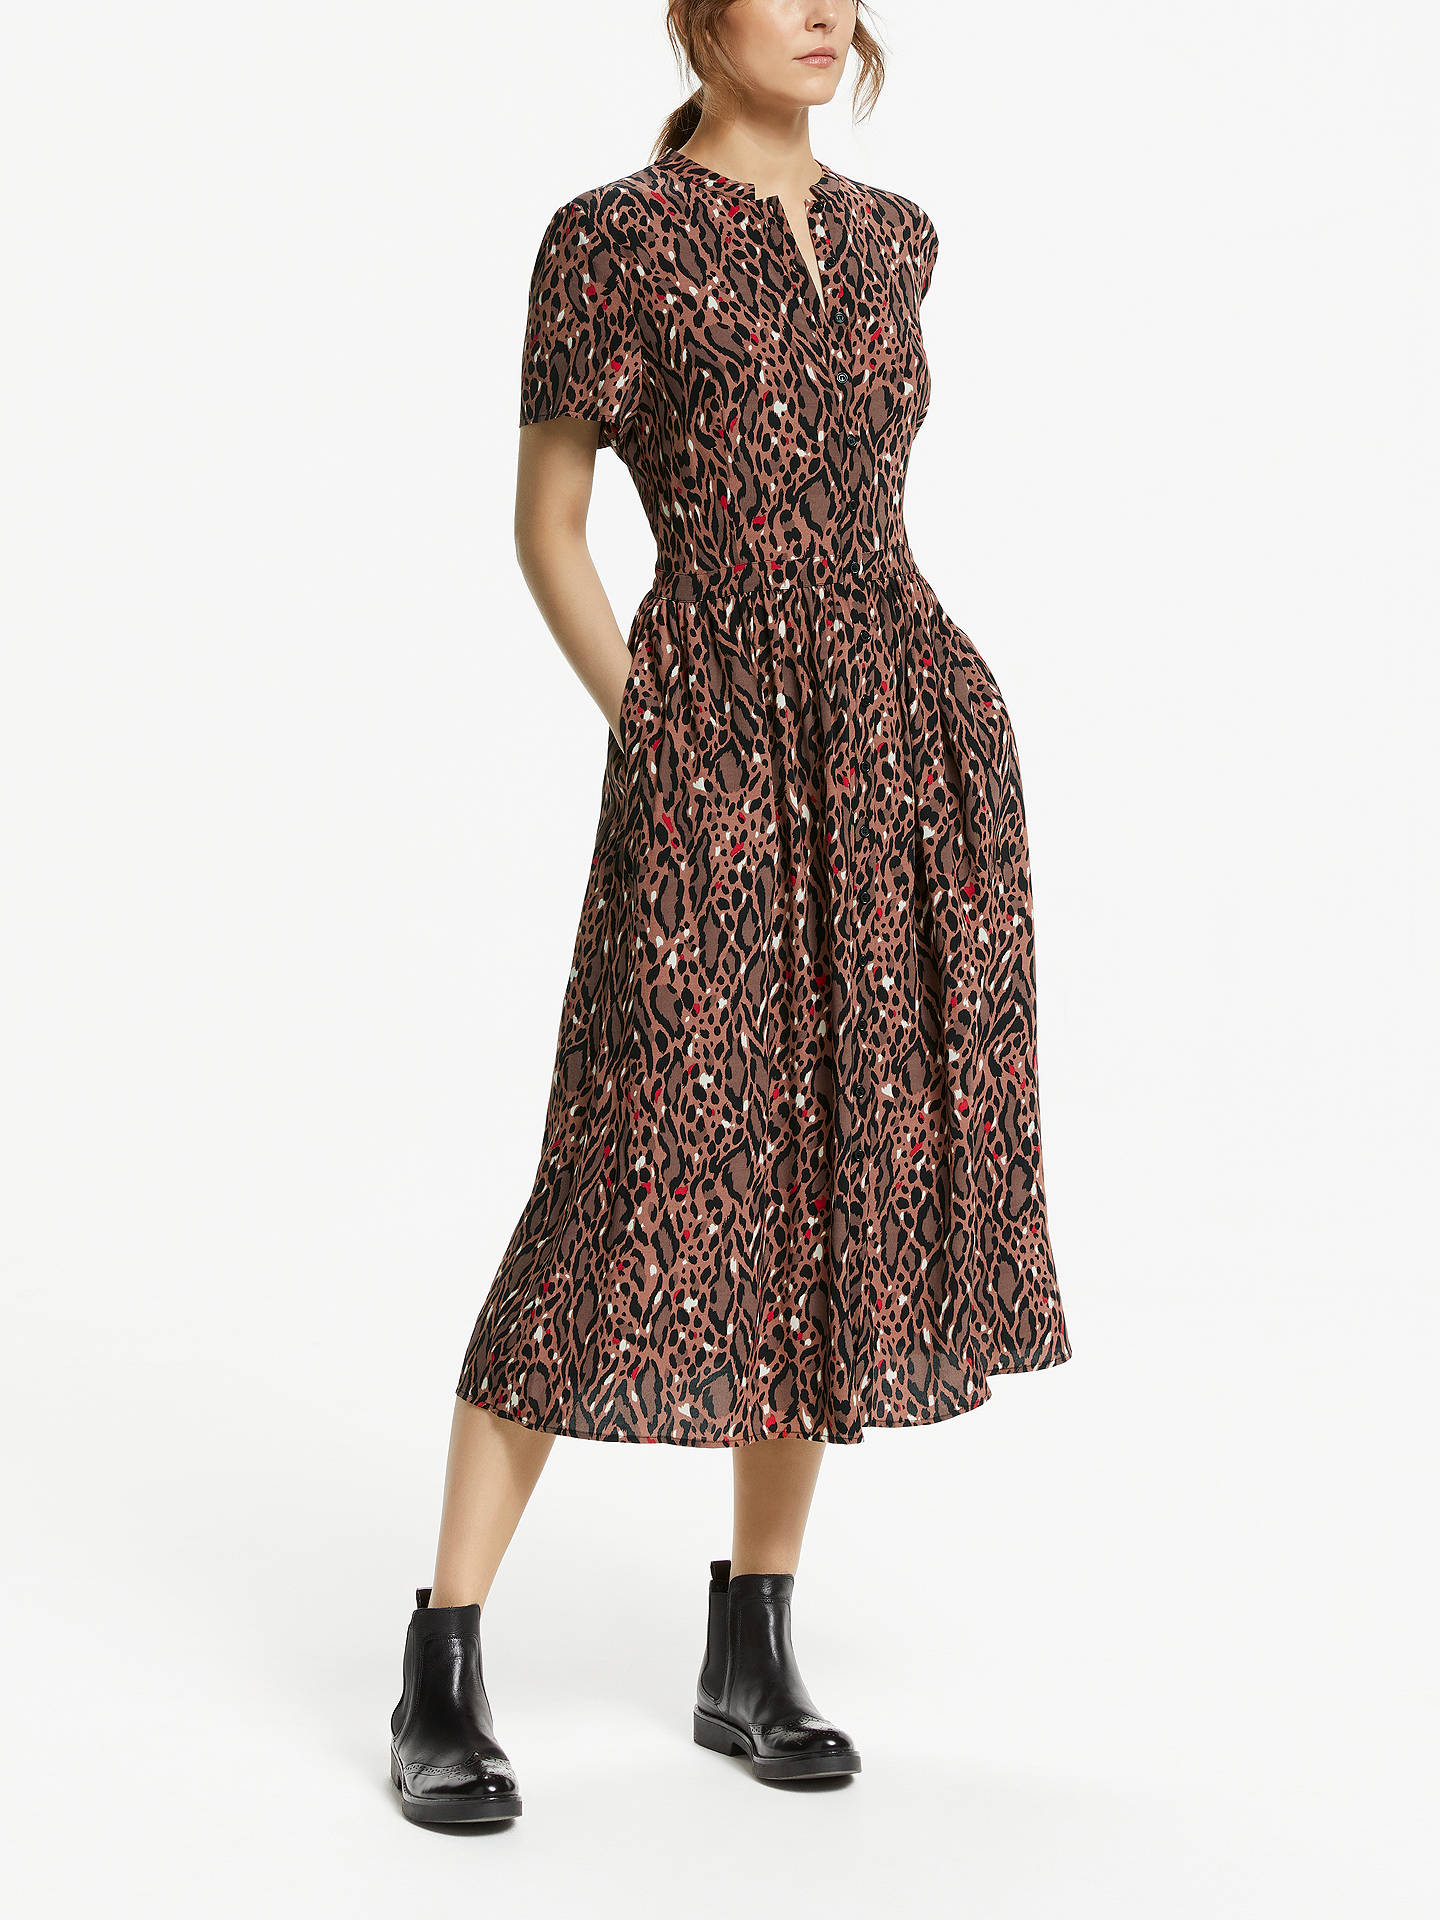 a680a56fa4 BuySomerset by Alice Temperley Leopard Print Shirt Dress